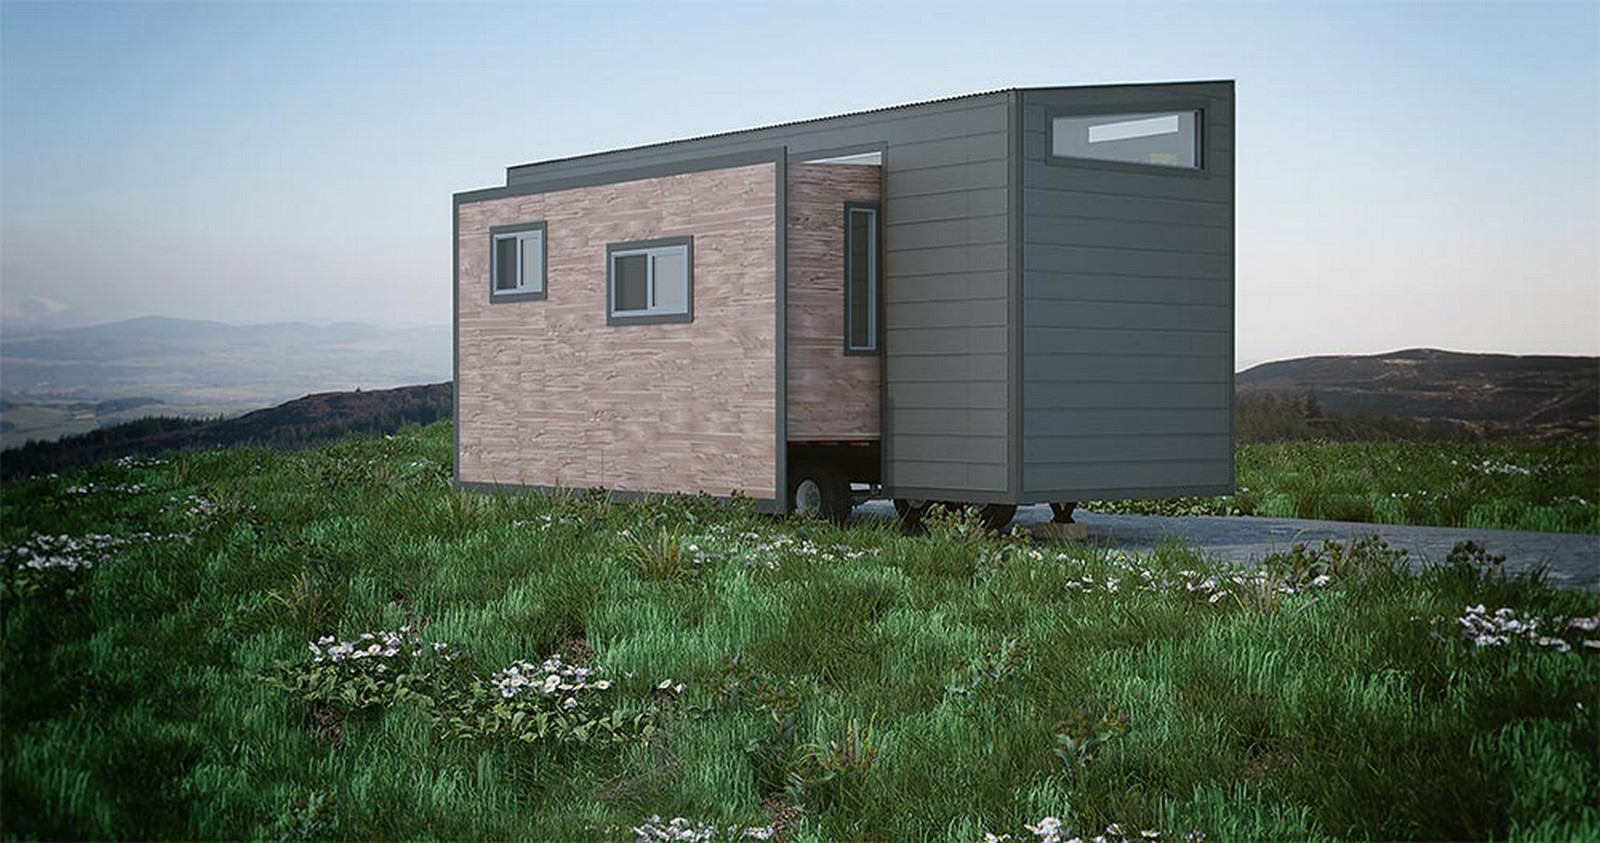 15 Examples of Tiny-home designs - Sheet1